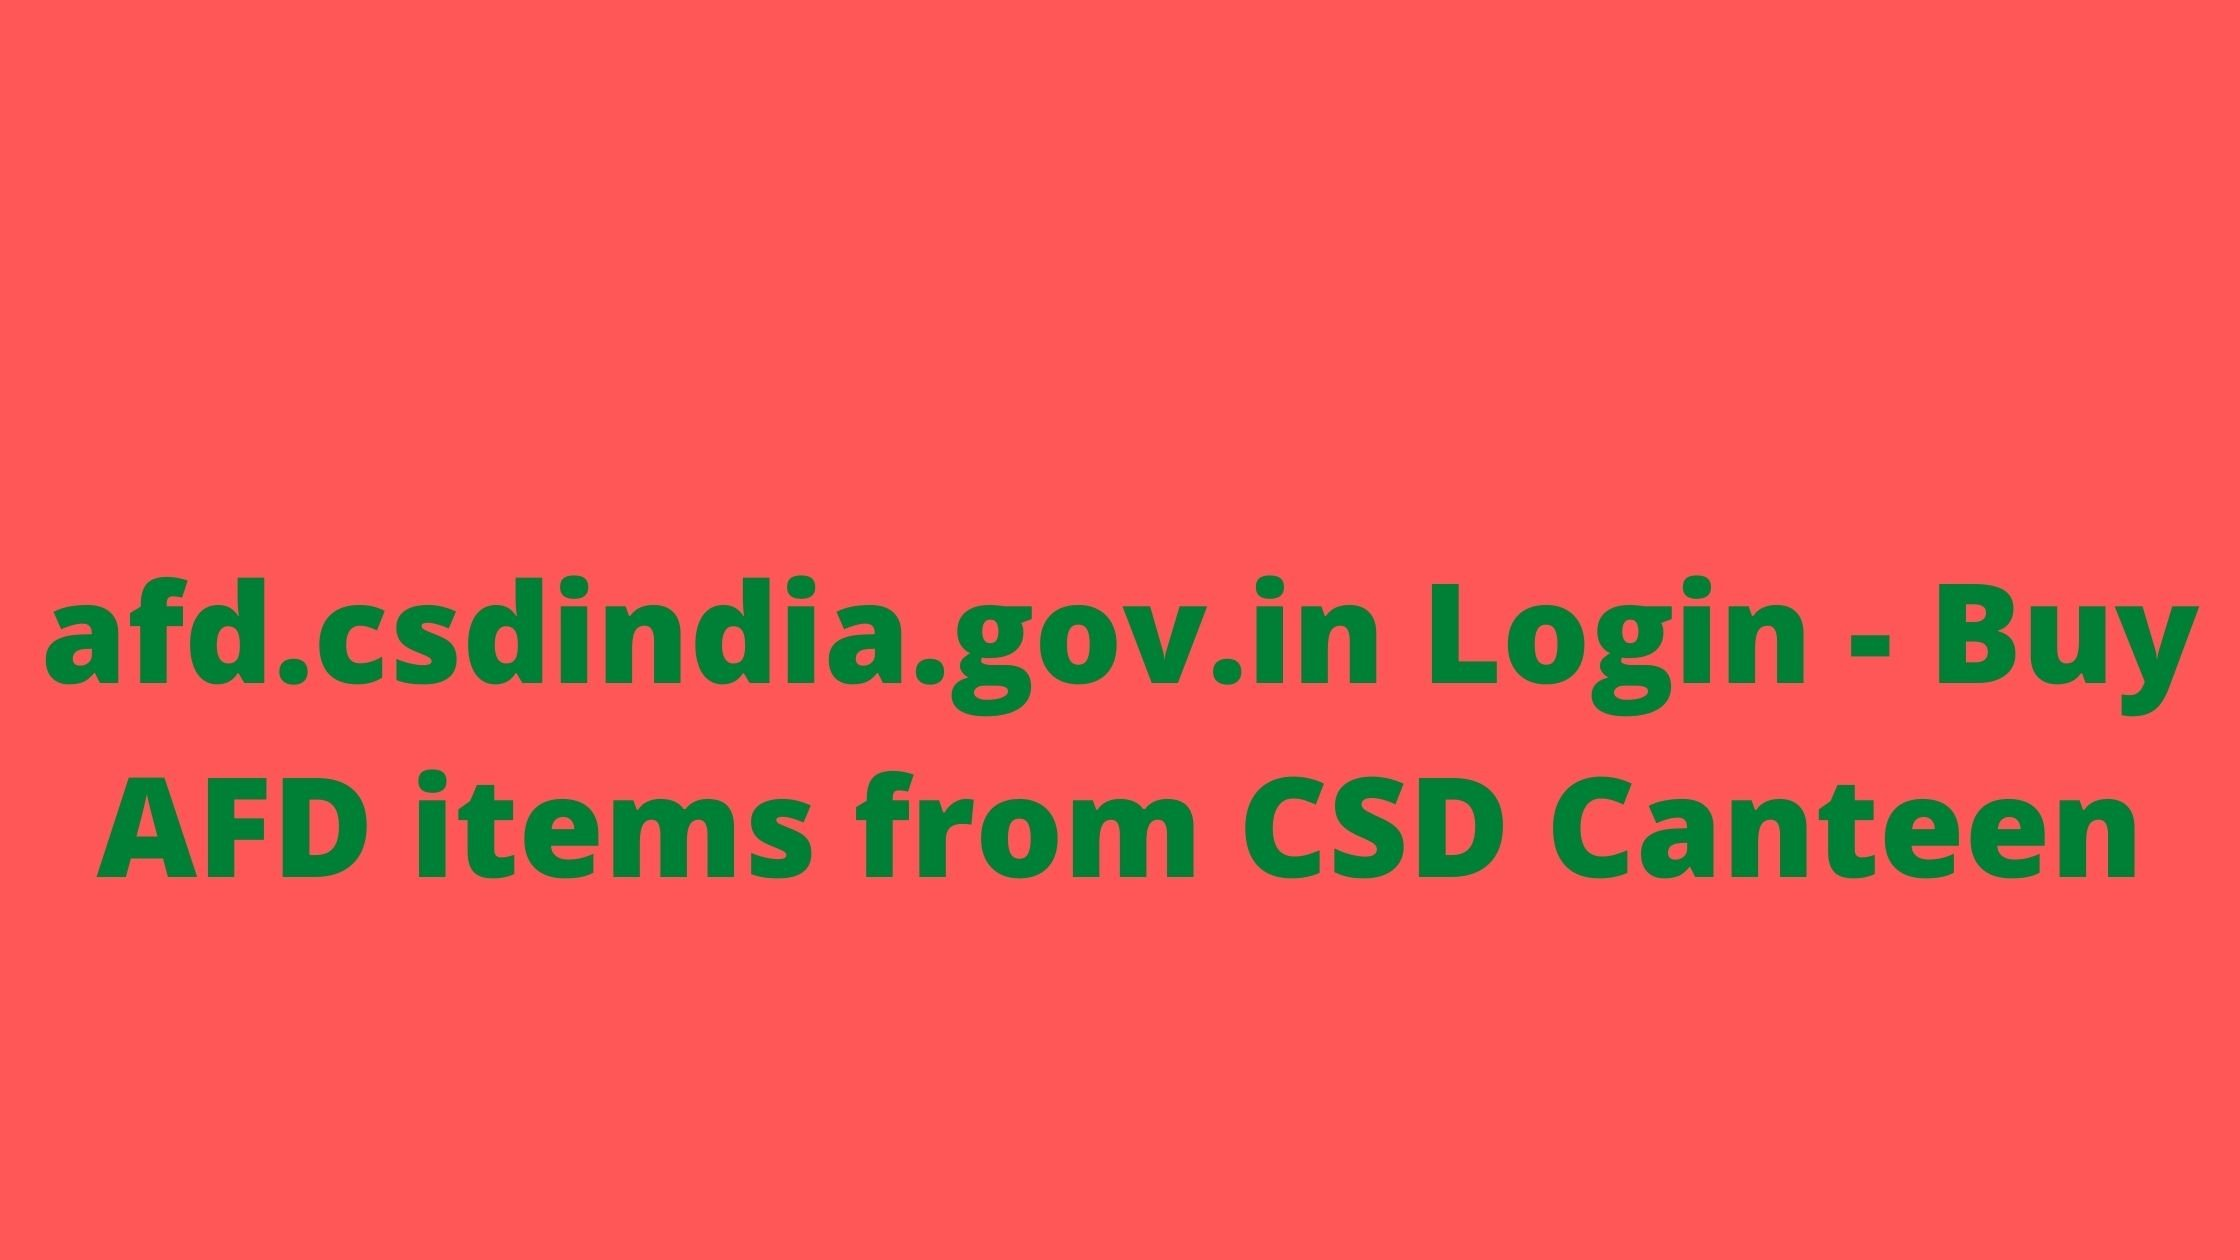 afd.csdindia.gov.in Login - Buy AFD items from CSD Canteen